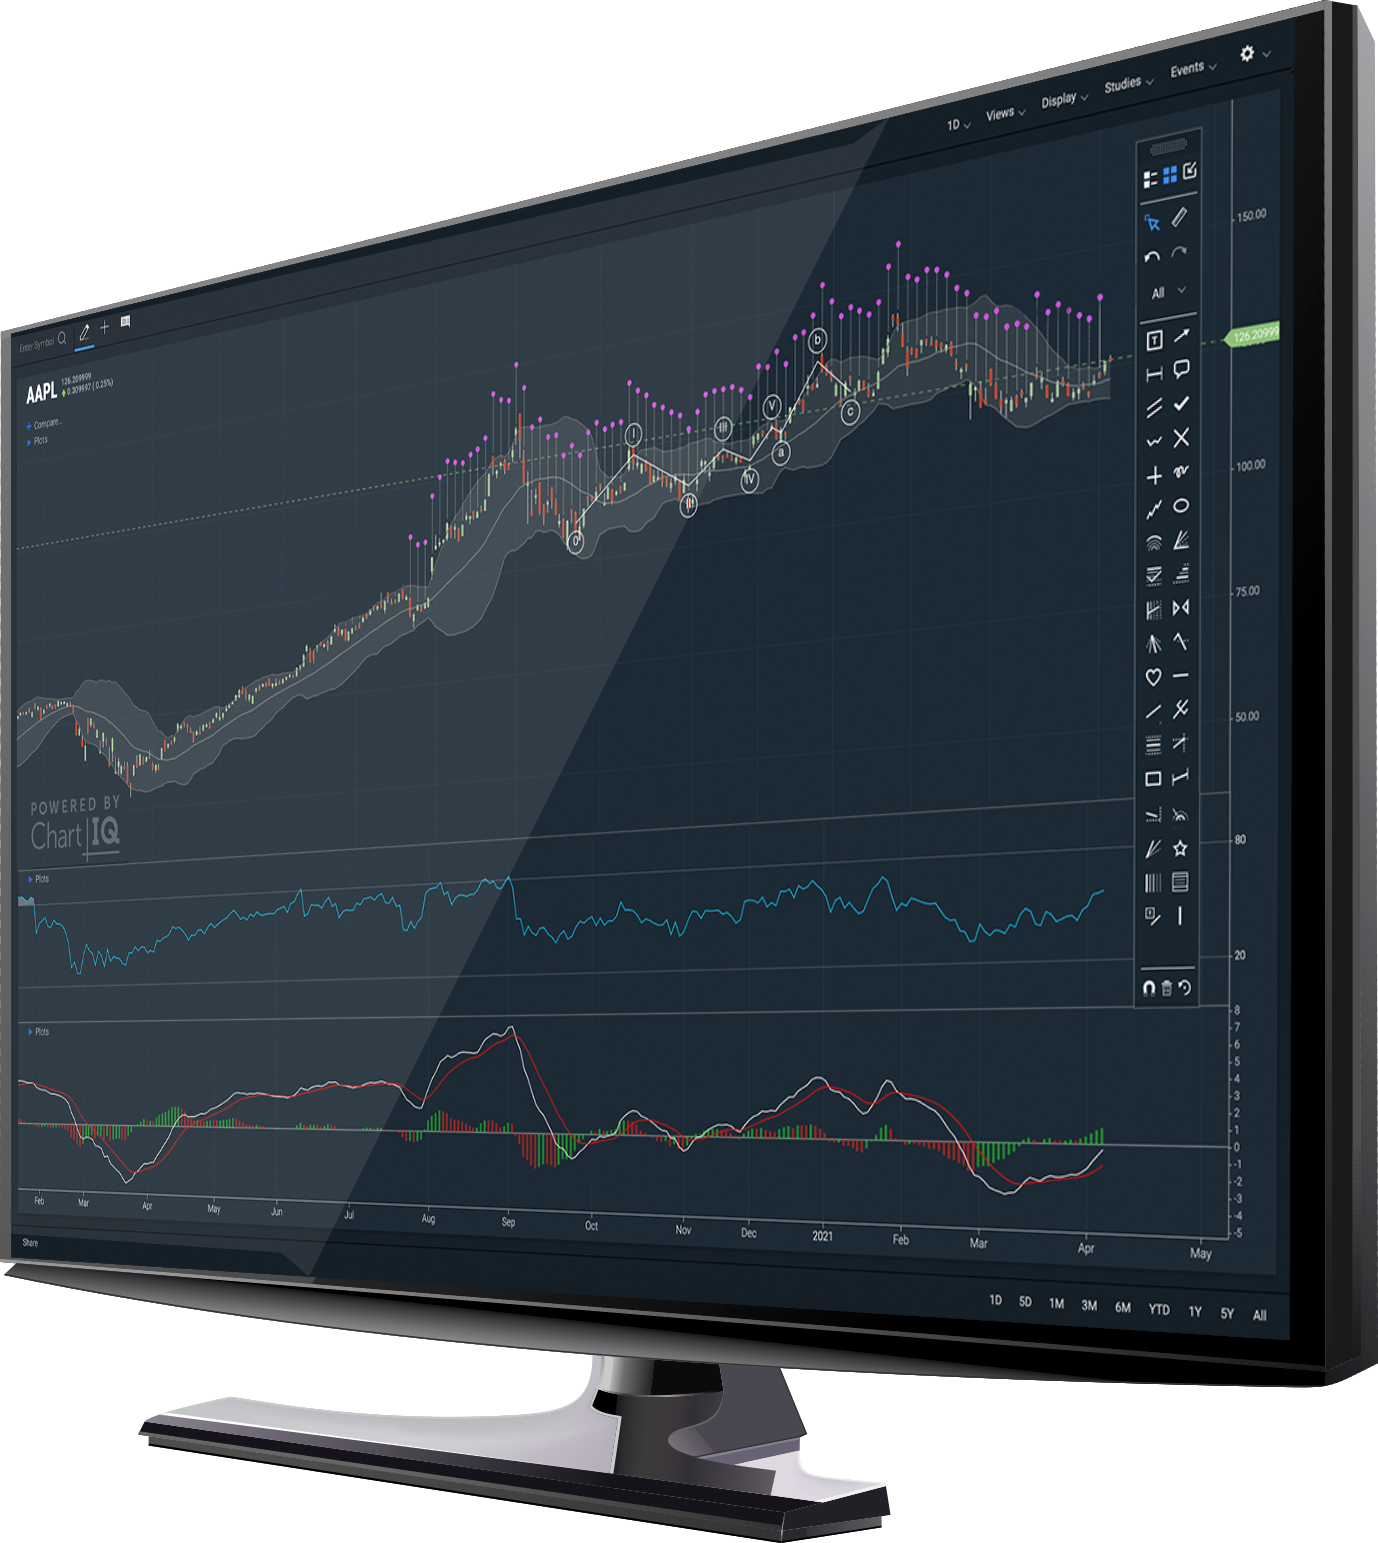 Candlestick chart with active trader events and MACD study